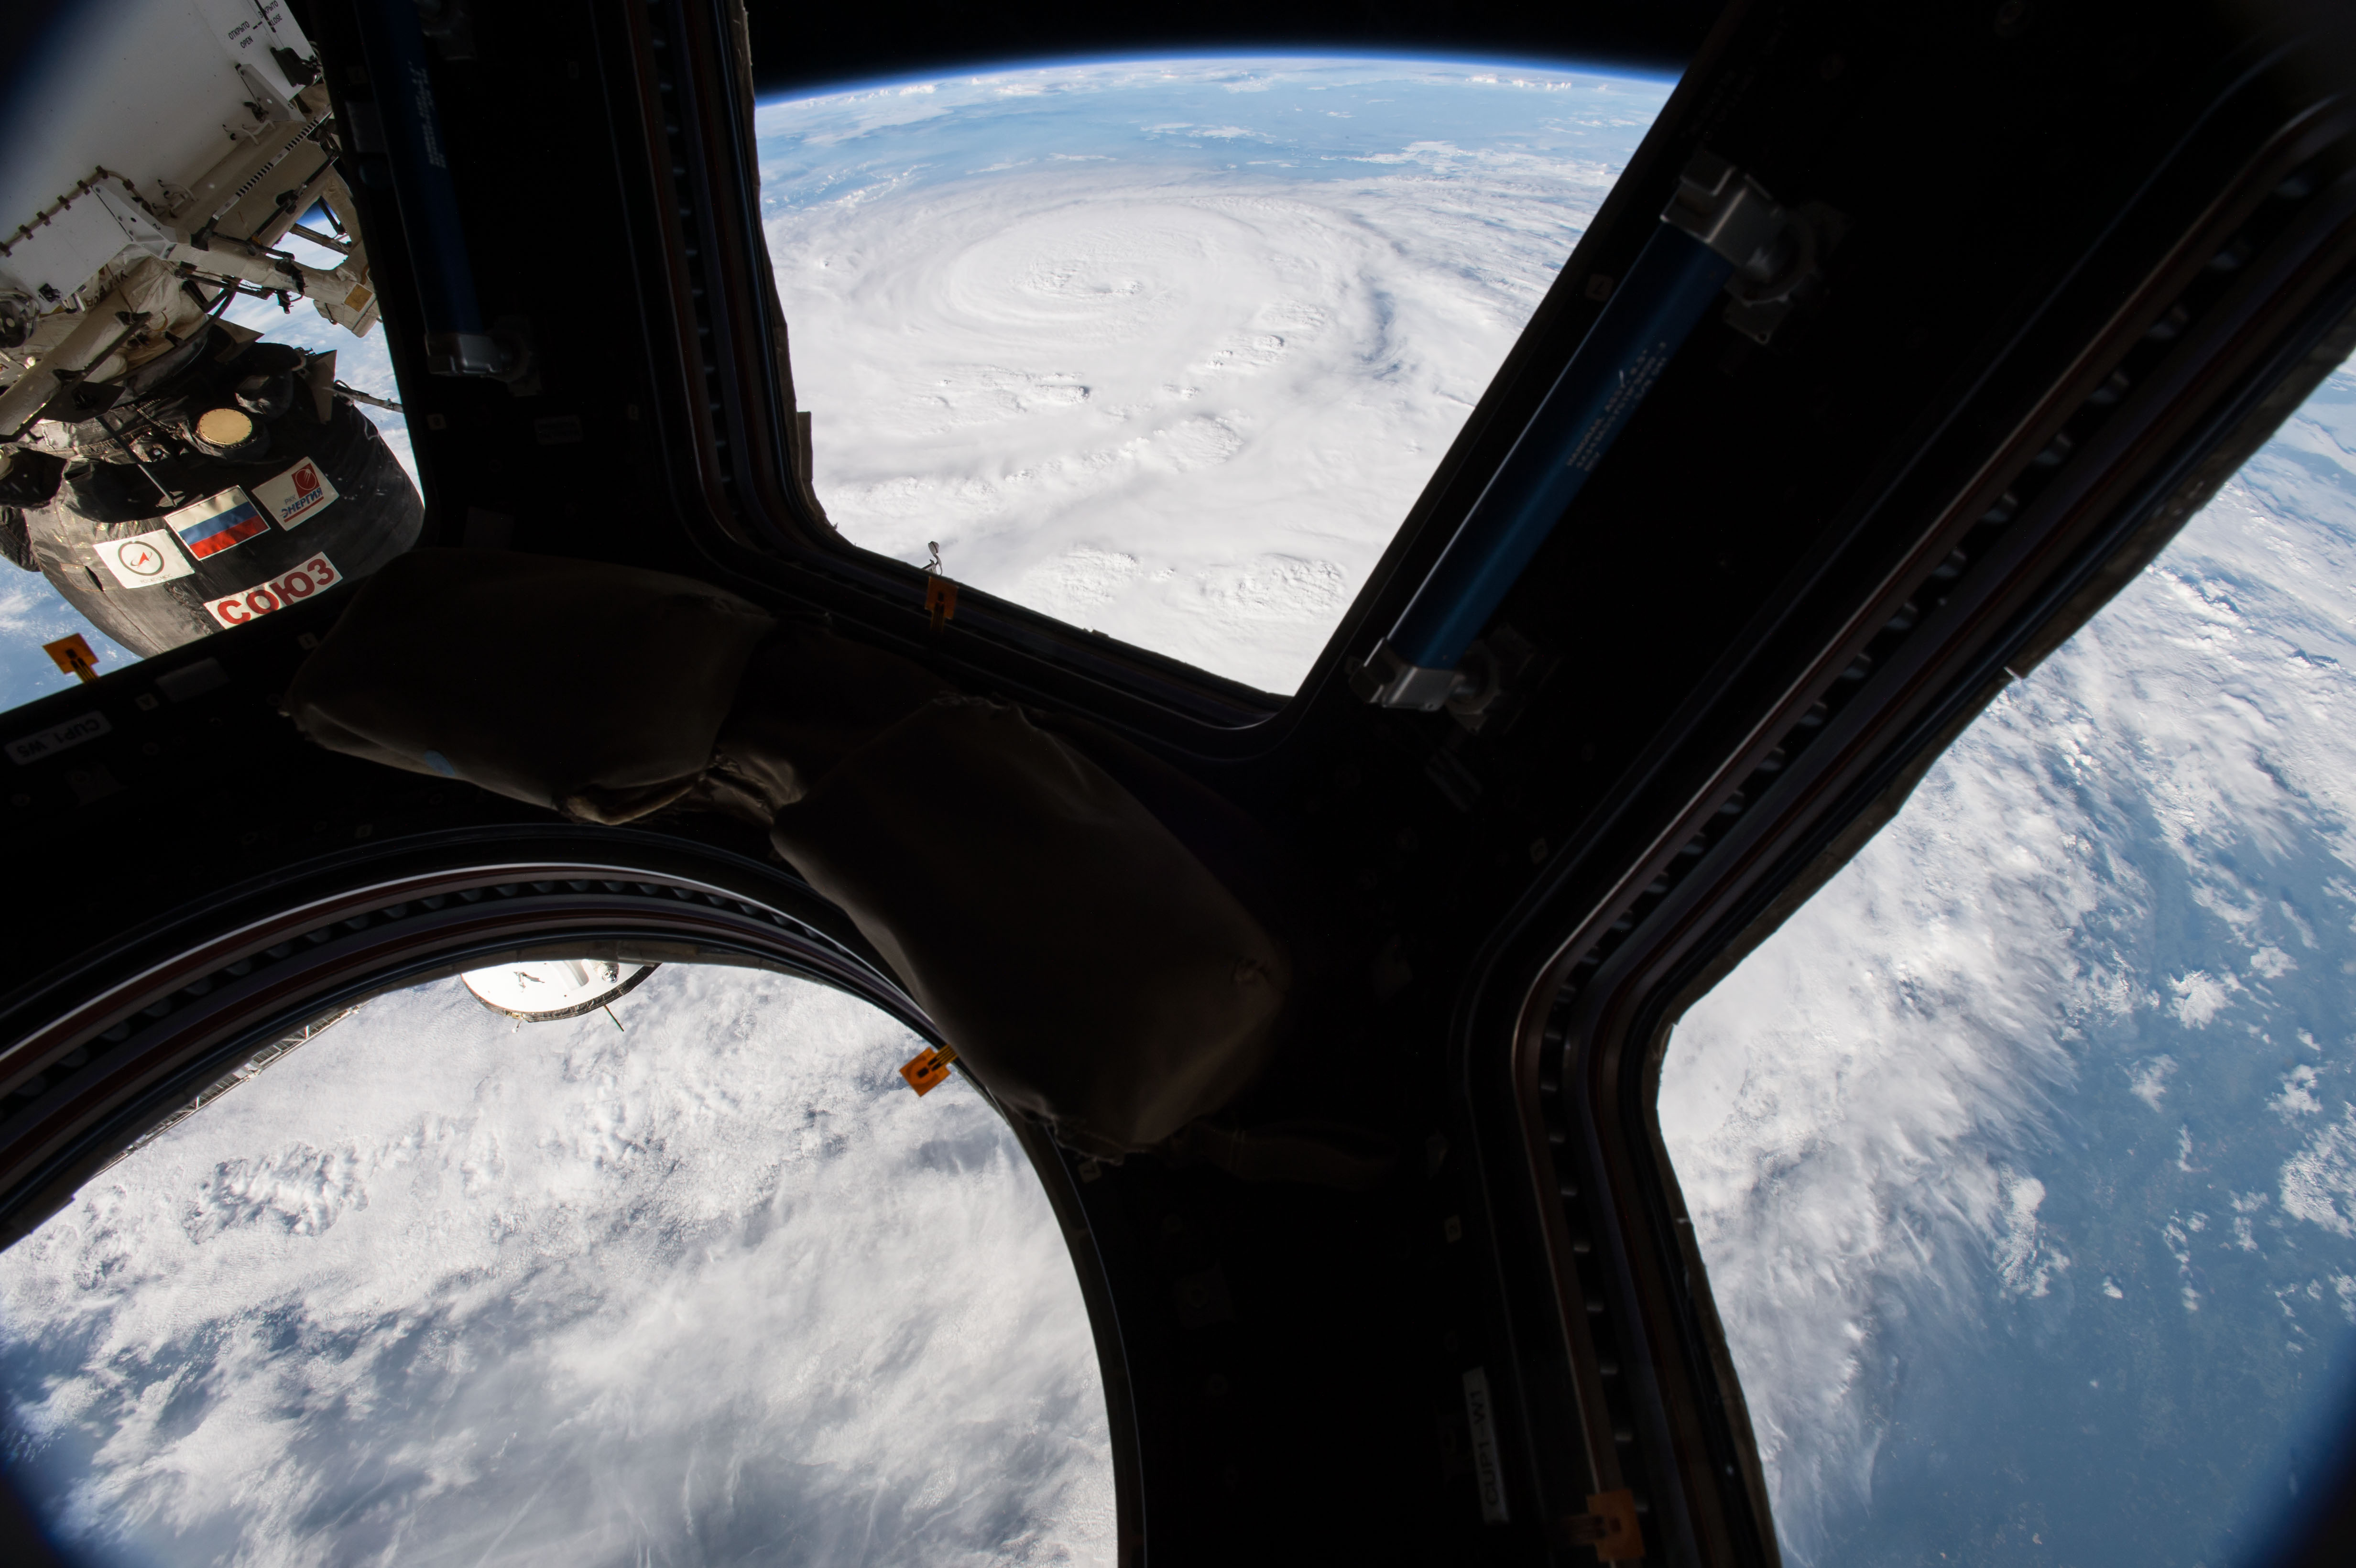 Hurricane Harvey Seen From the Cupola of the International Space Station